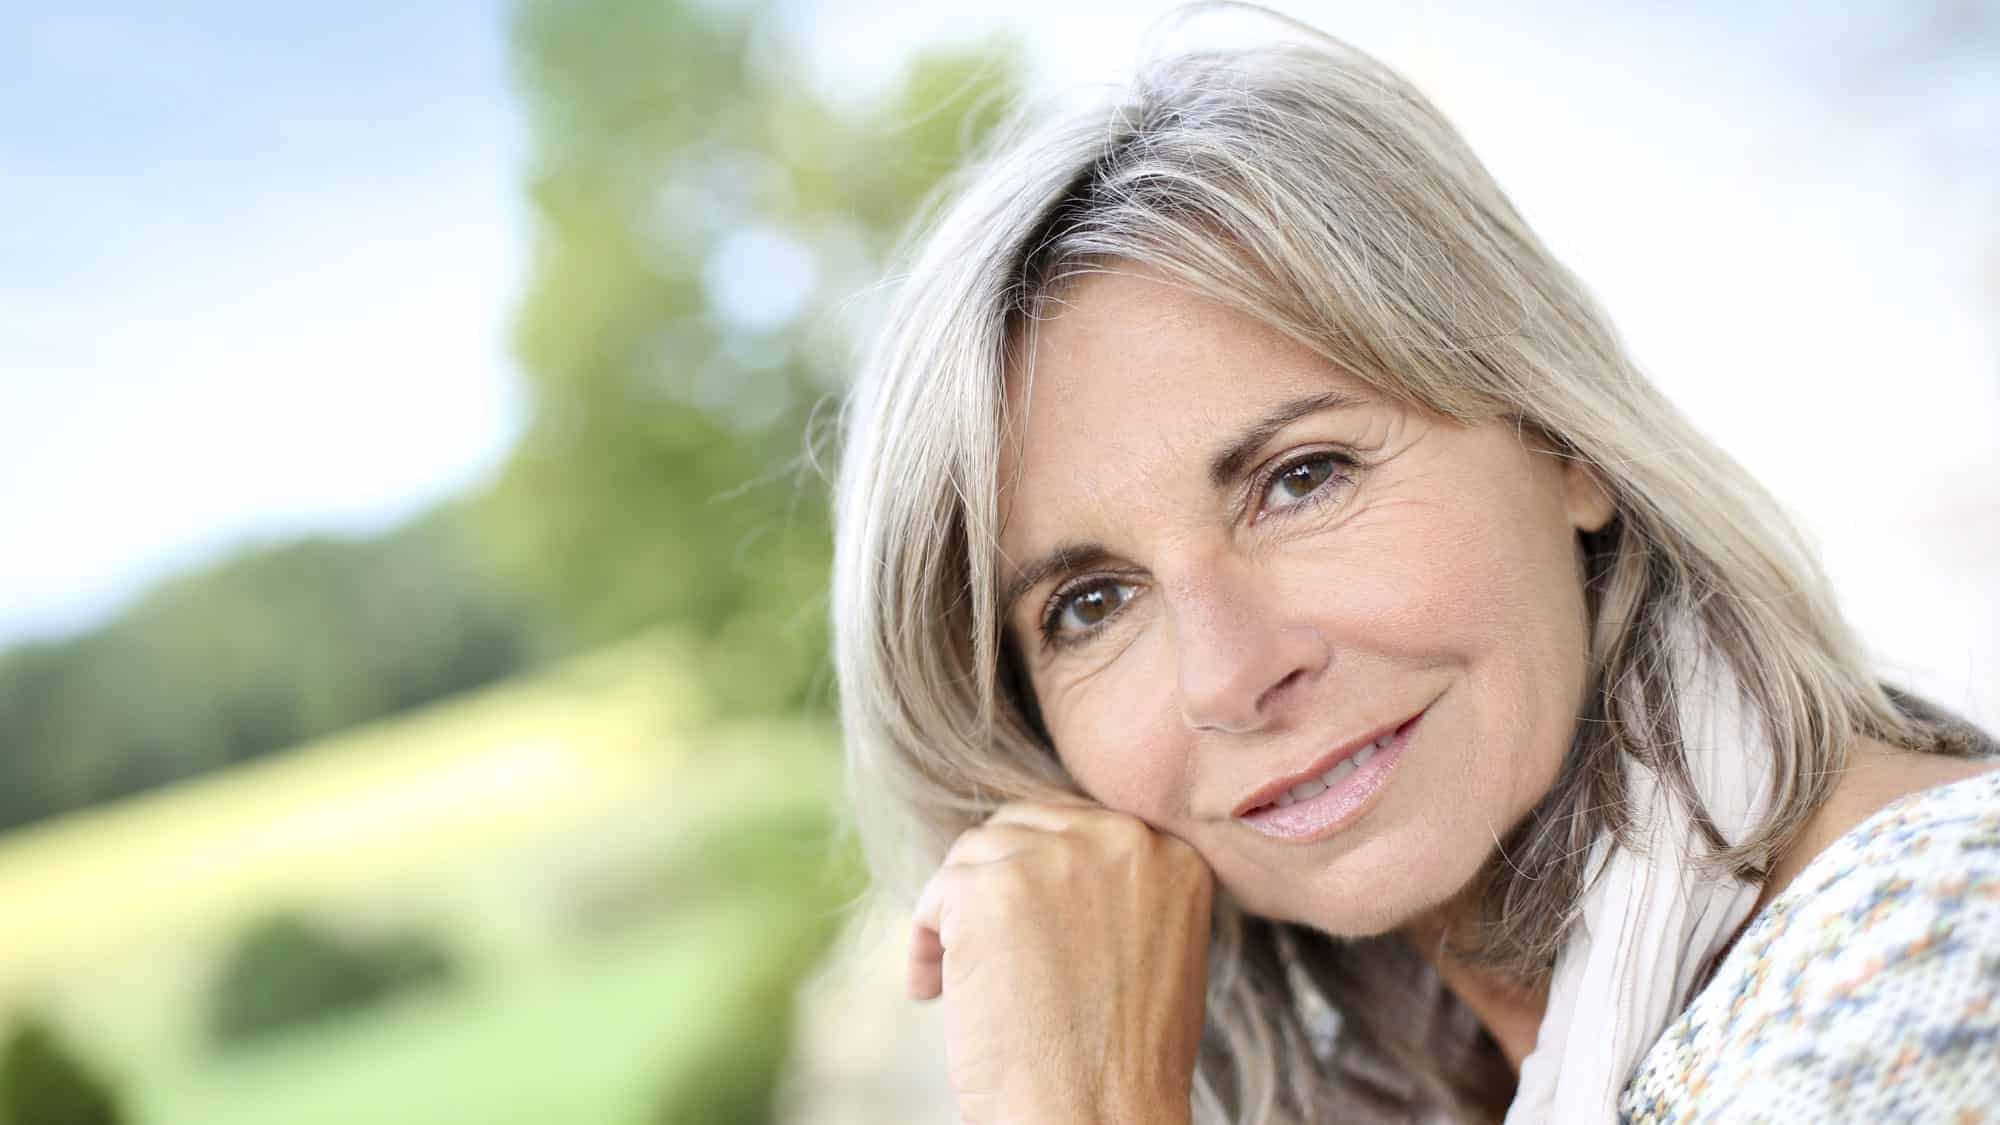 50 Women Over 50 Offer Advice for Finding Friends and Beating Loneliness |  Sixty and Me